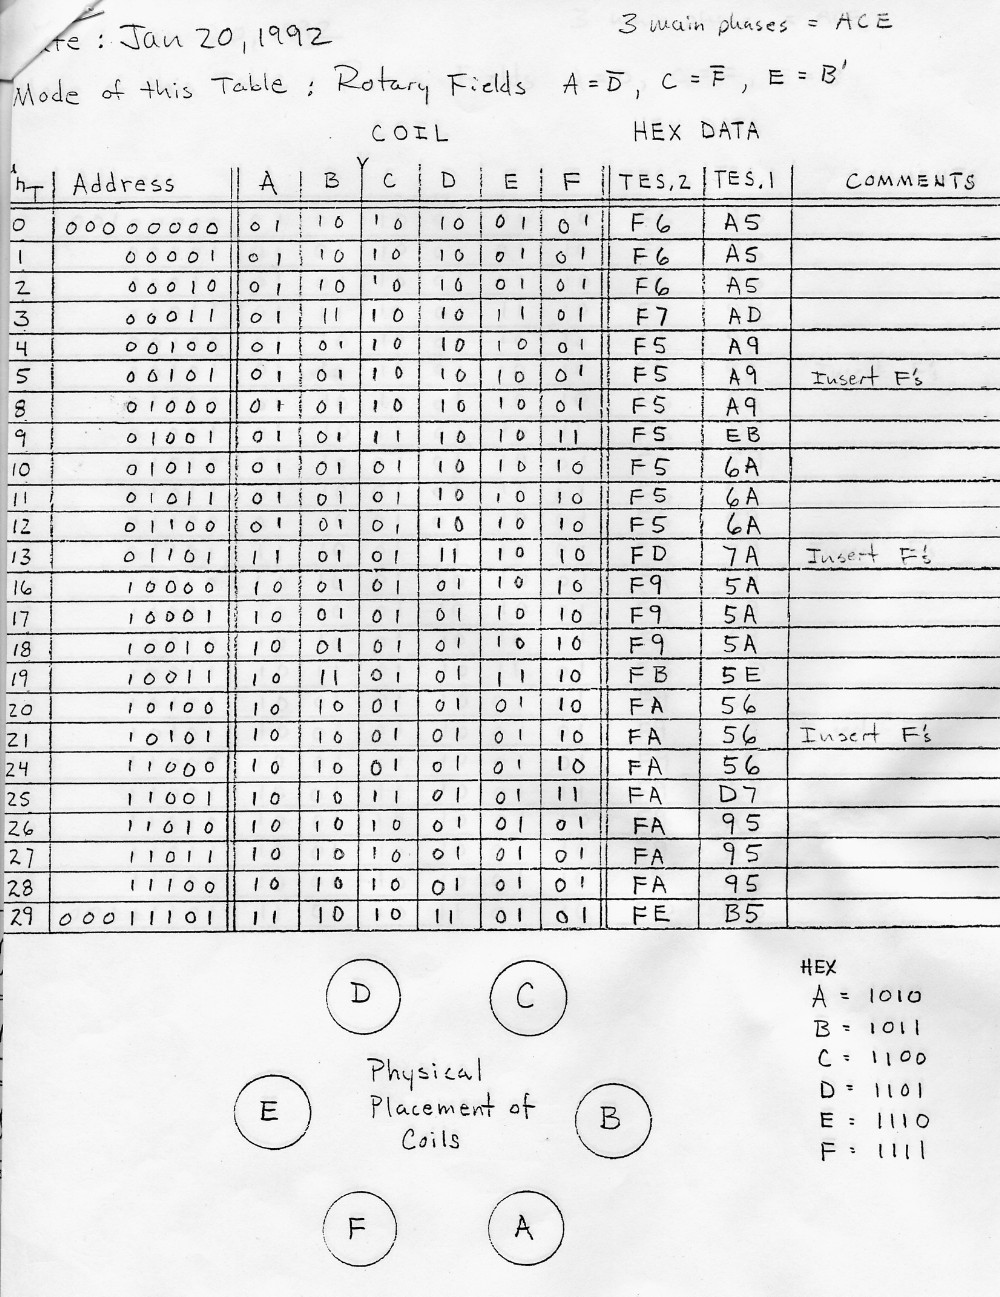 1992 3-phase Tesla coil controller e-prom truth table 1 of 4